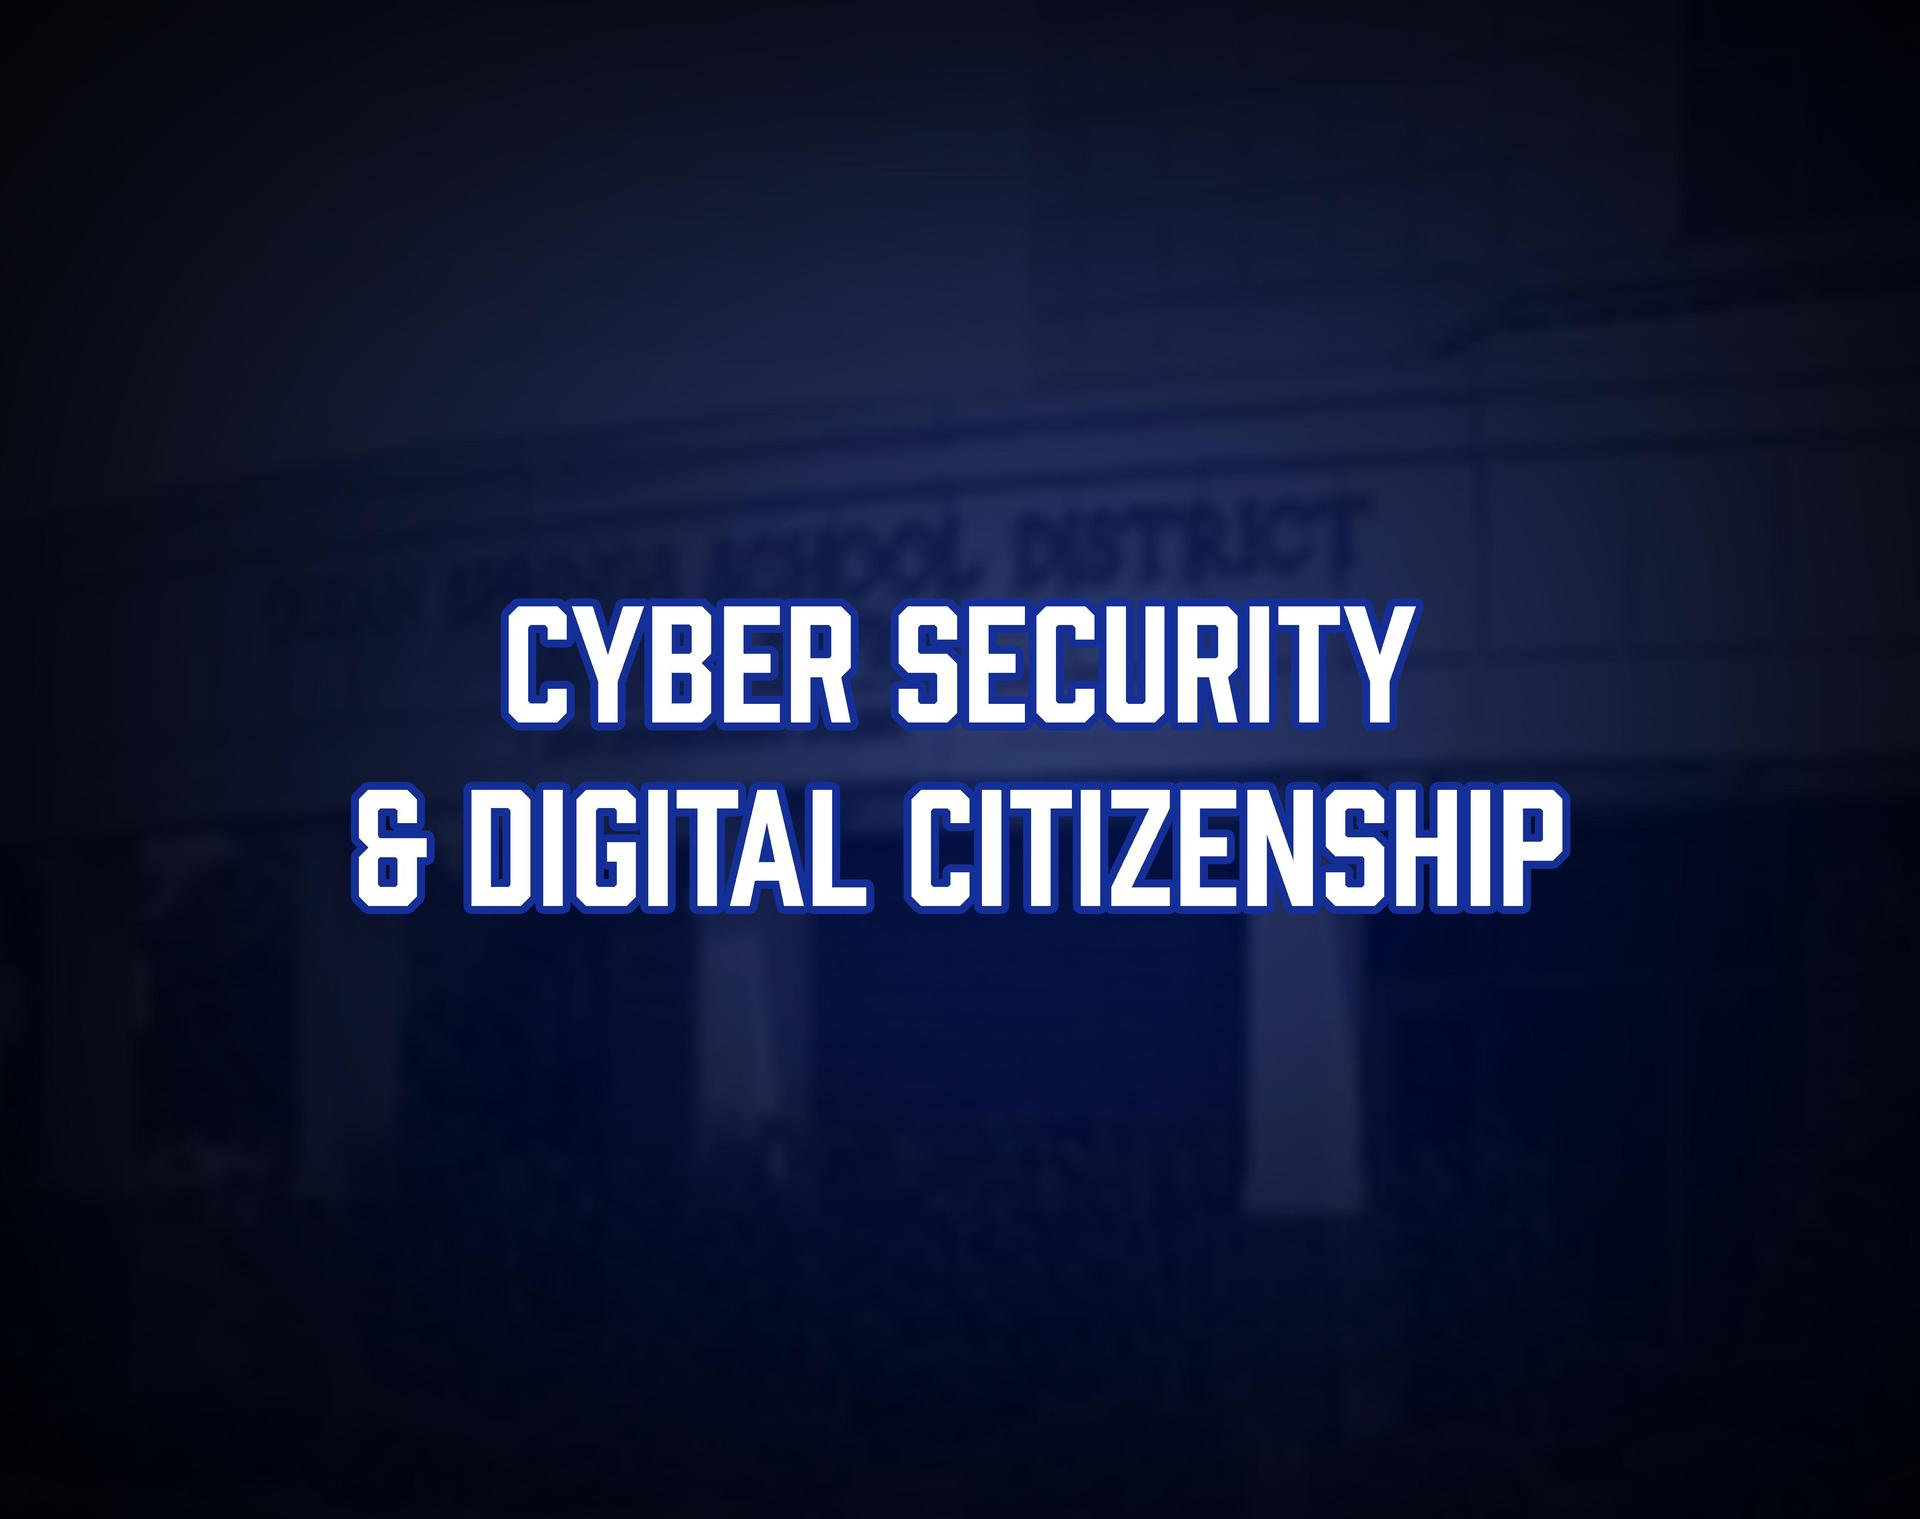 Cybersecurity and Digital citizenship